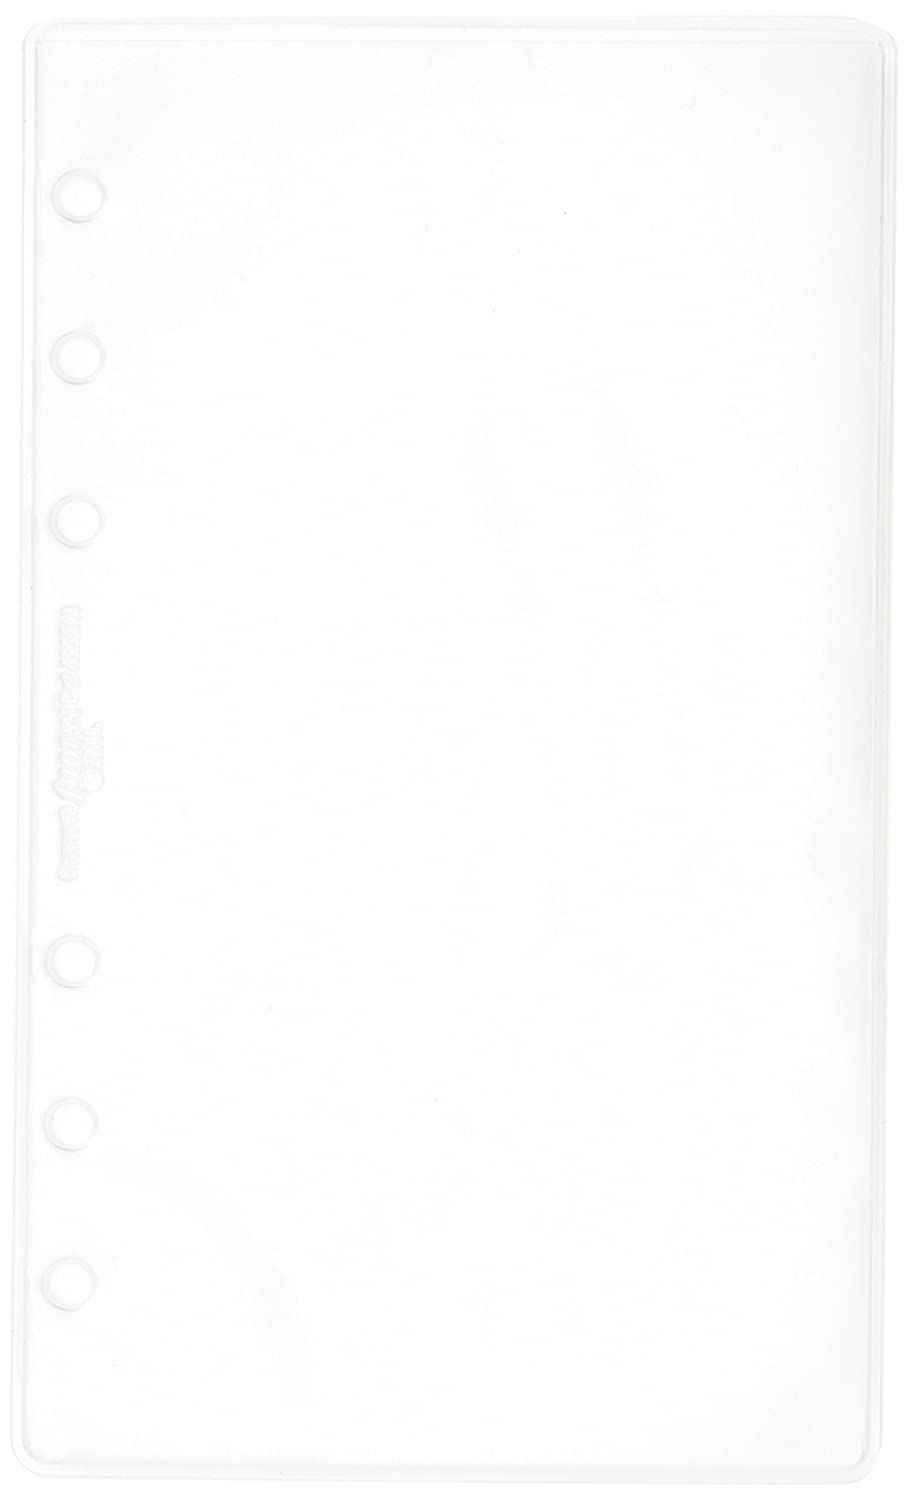 Filofax Transparent Envelope Top Opening (B133612) REDIFORM OFFICE PRODUCTS